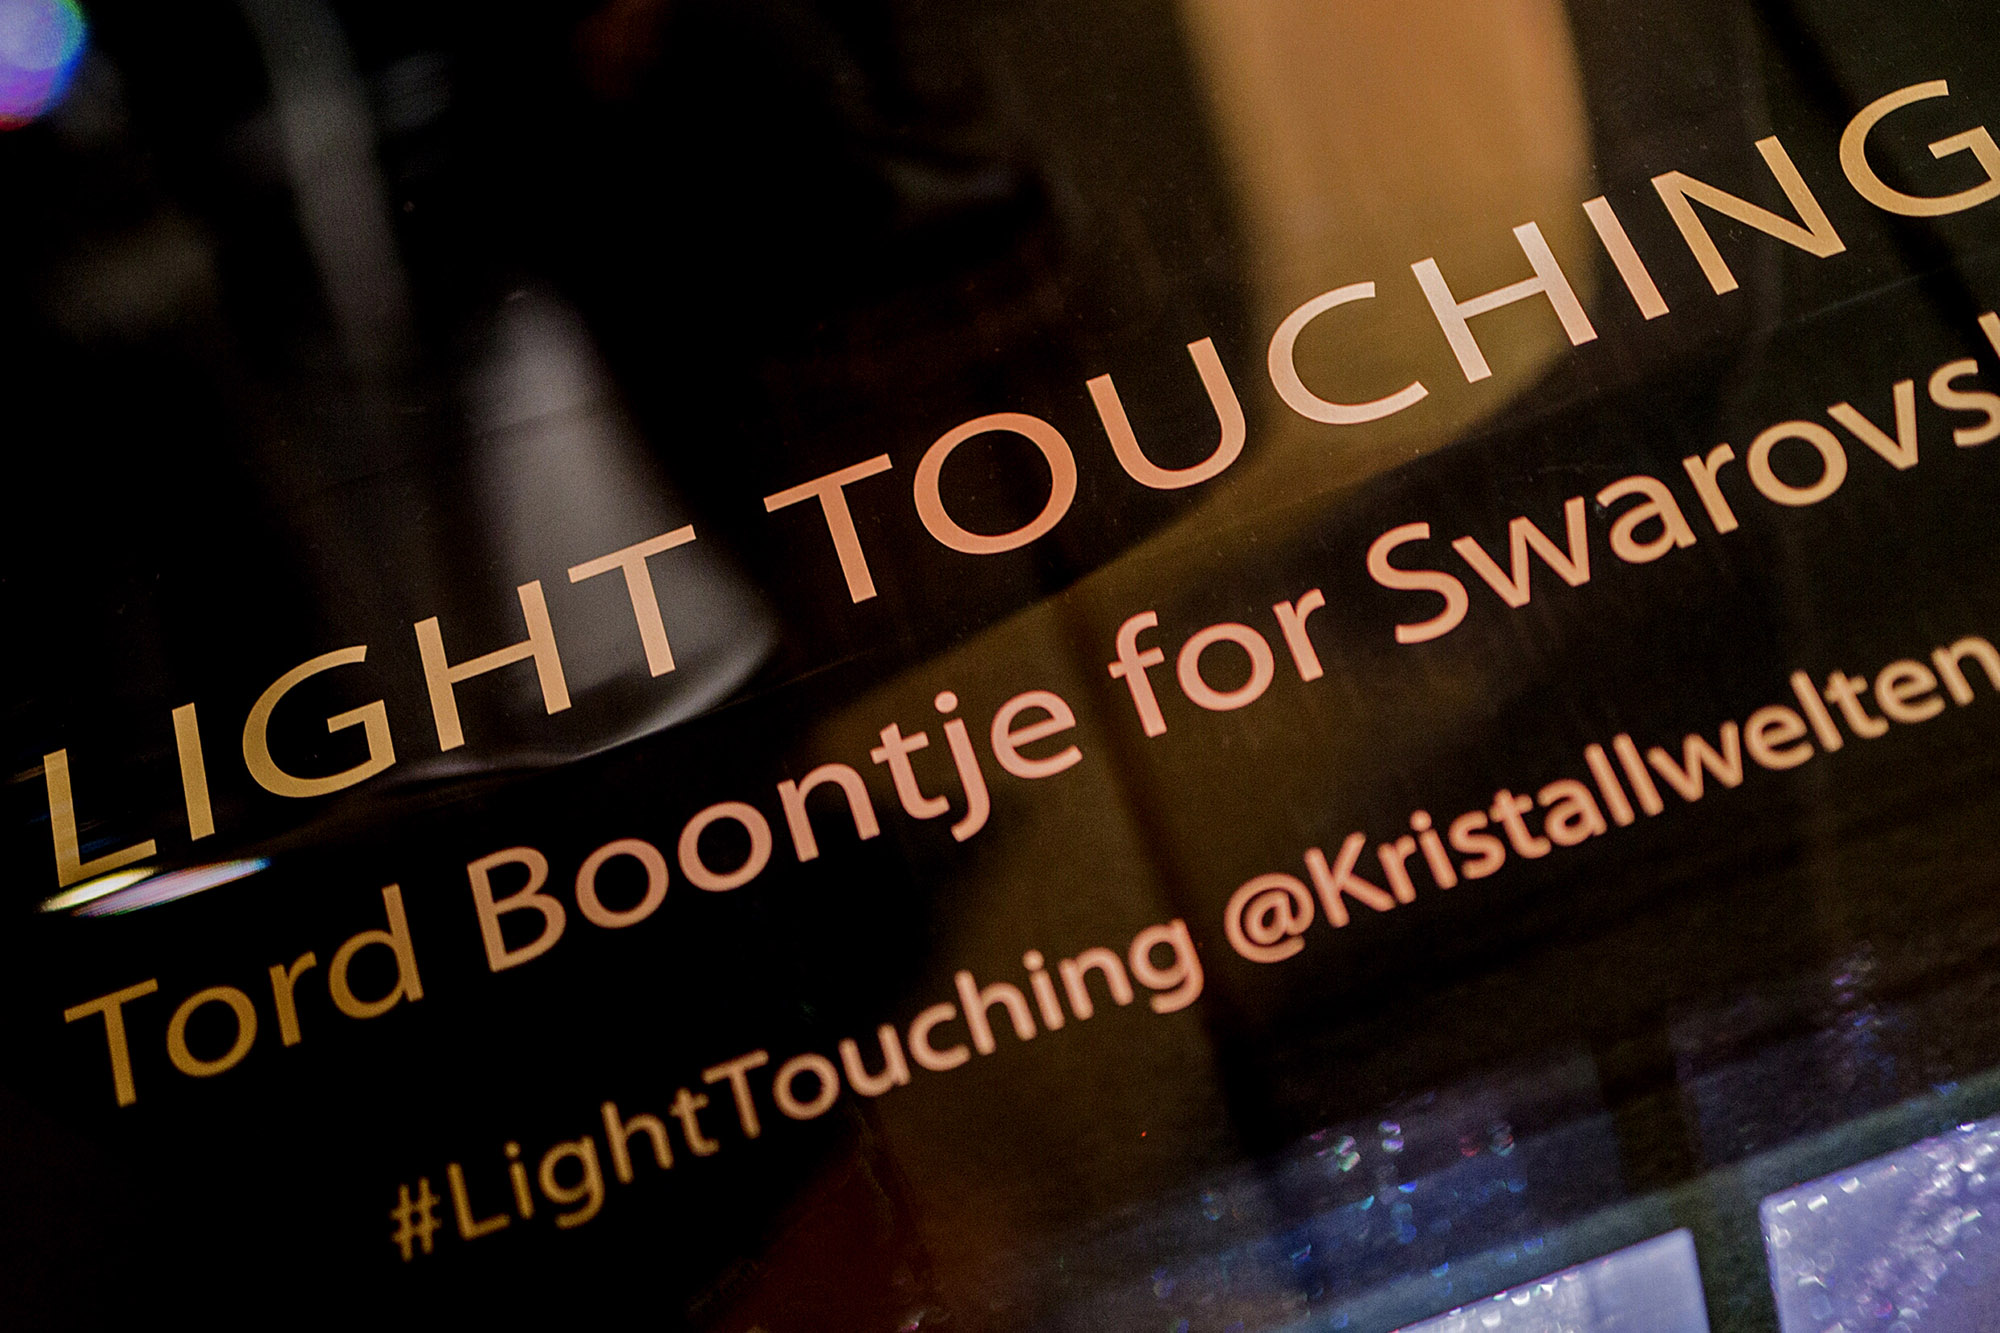 Light_Touching_05.jpg